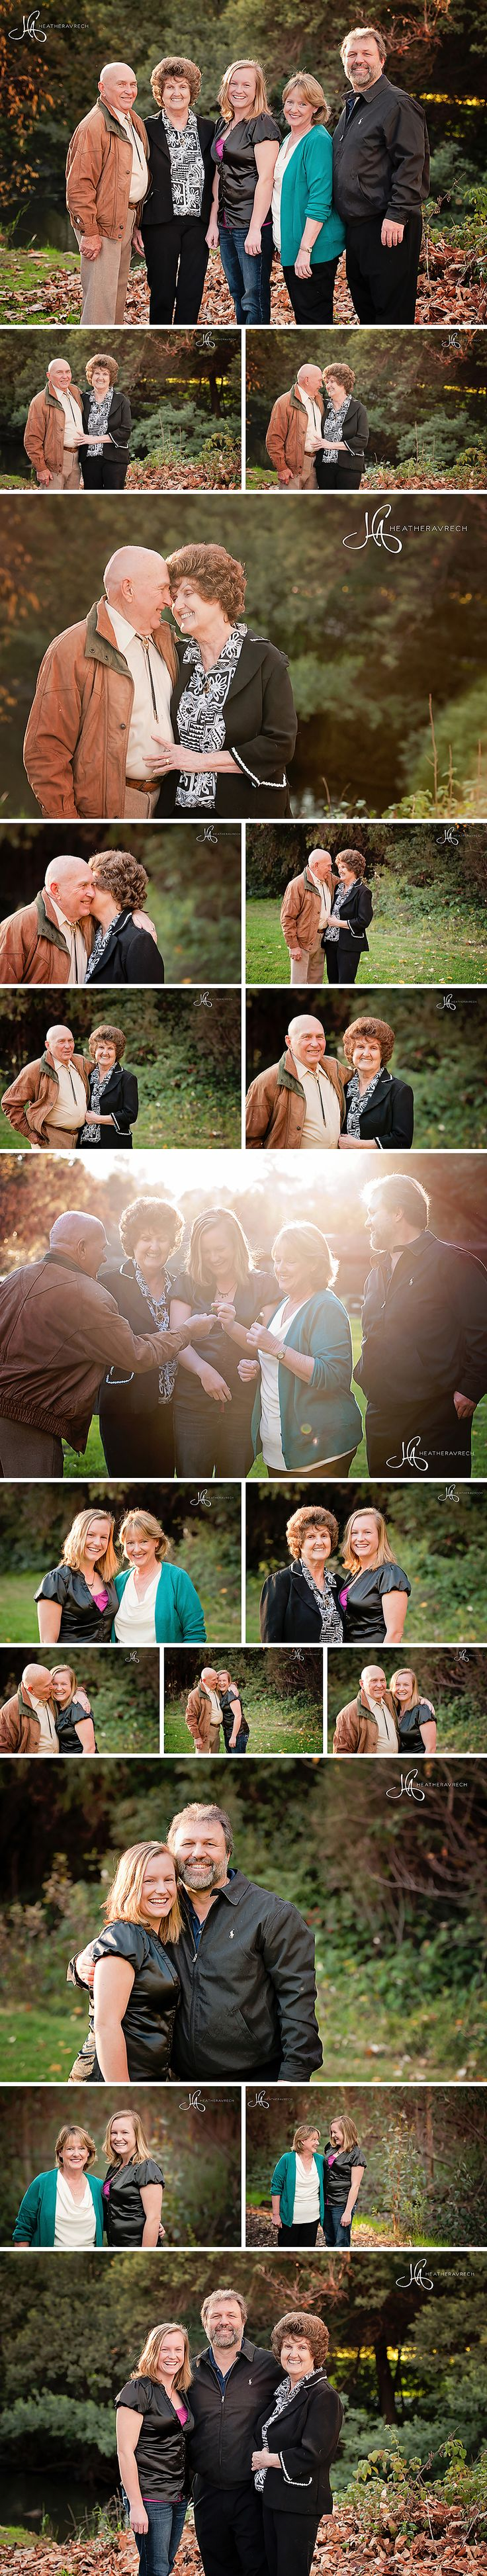 This older couple is so SO cute.  They've been together for 60 years and that spark is definitely still there.  Inspiring!